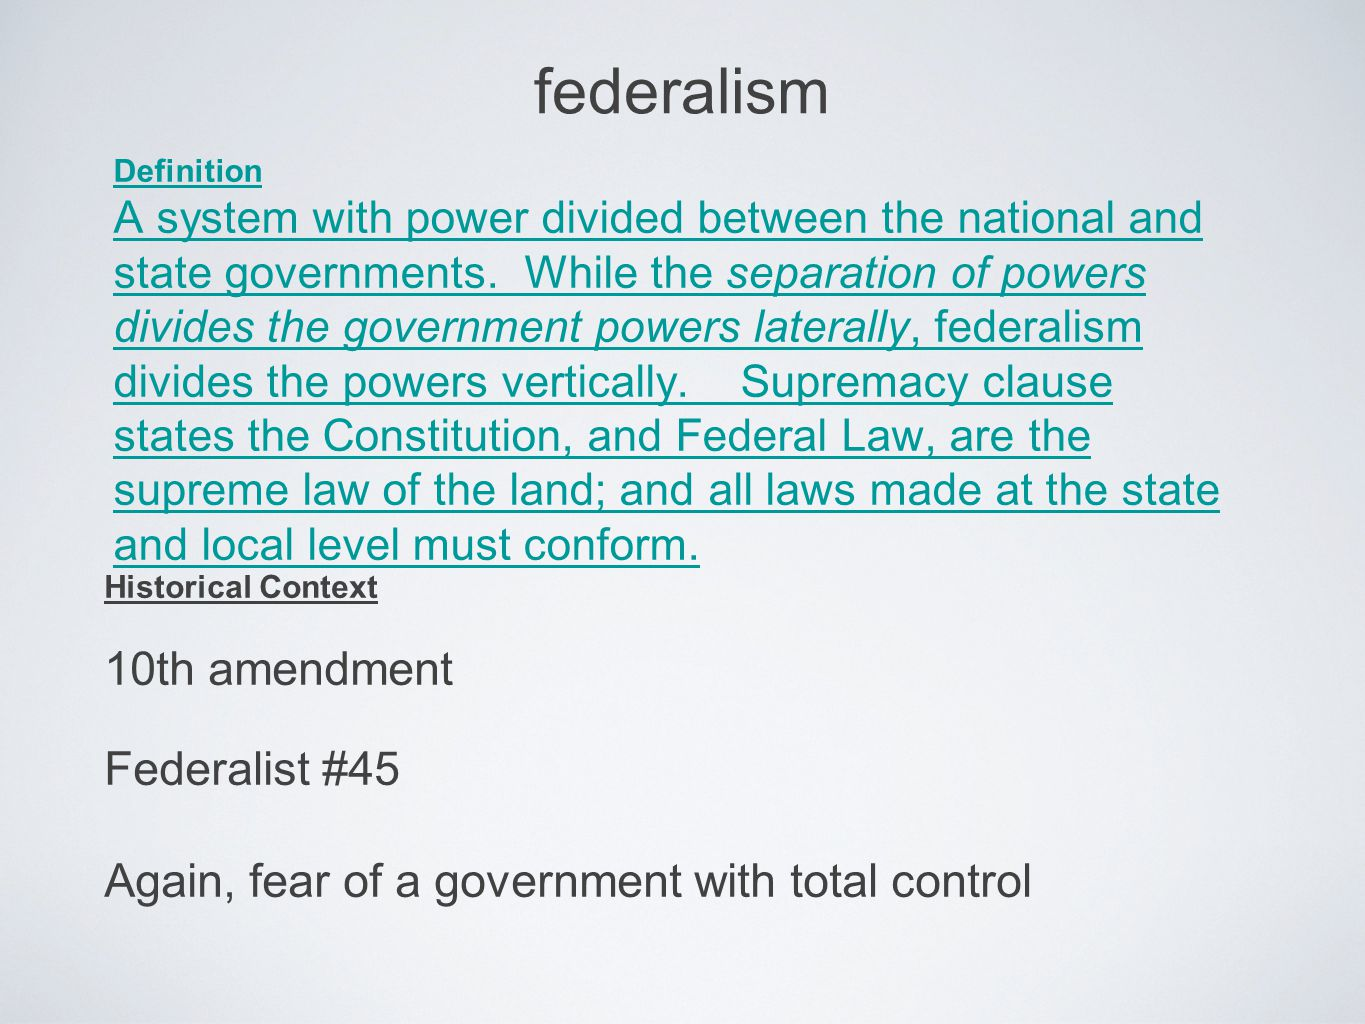 federalism Definition A system with power divided between the national and state governments.